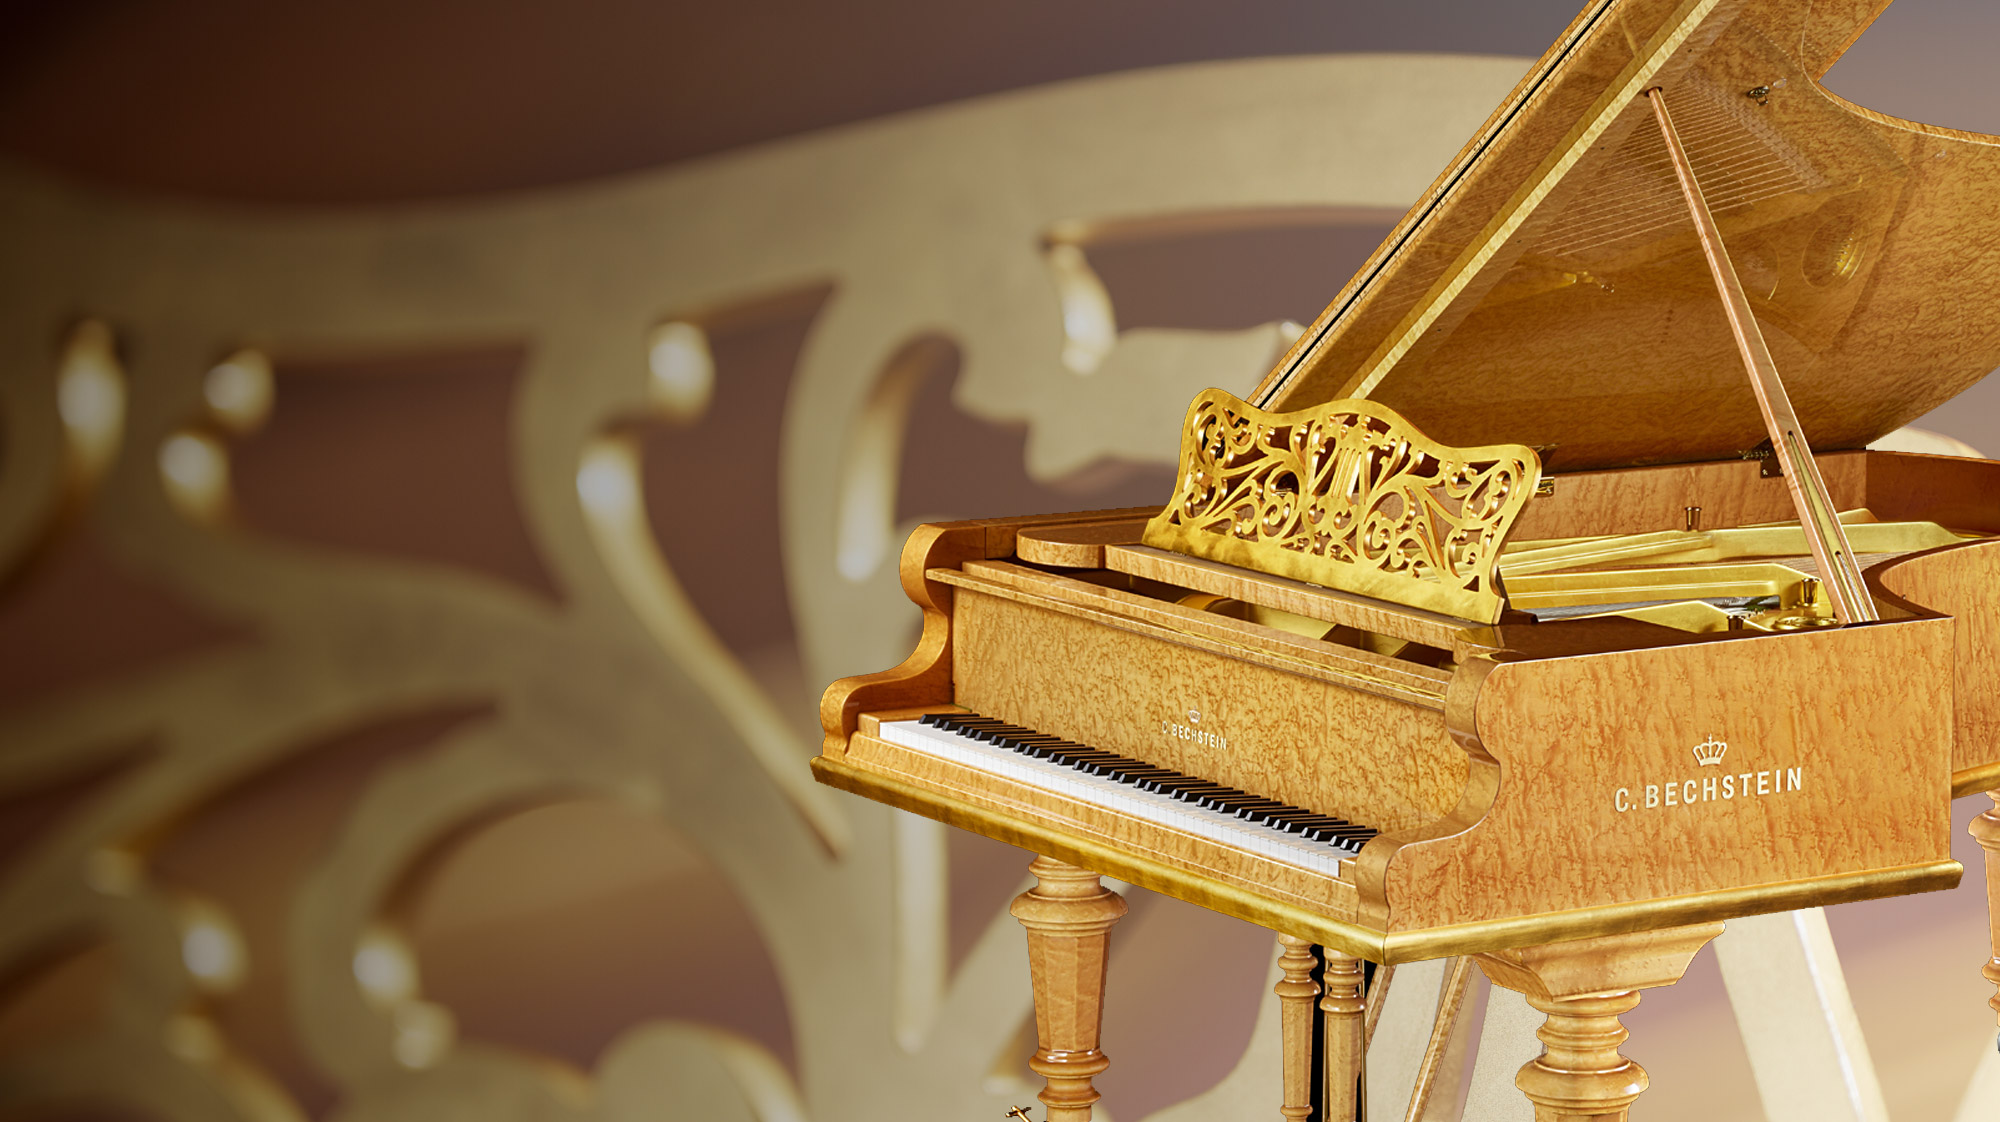 World Premiere: The C. Bechstein Salon Grand In Bird's Eye Maple